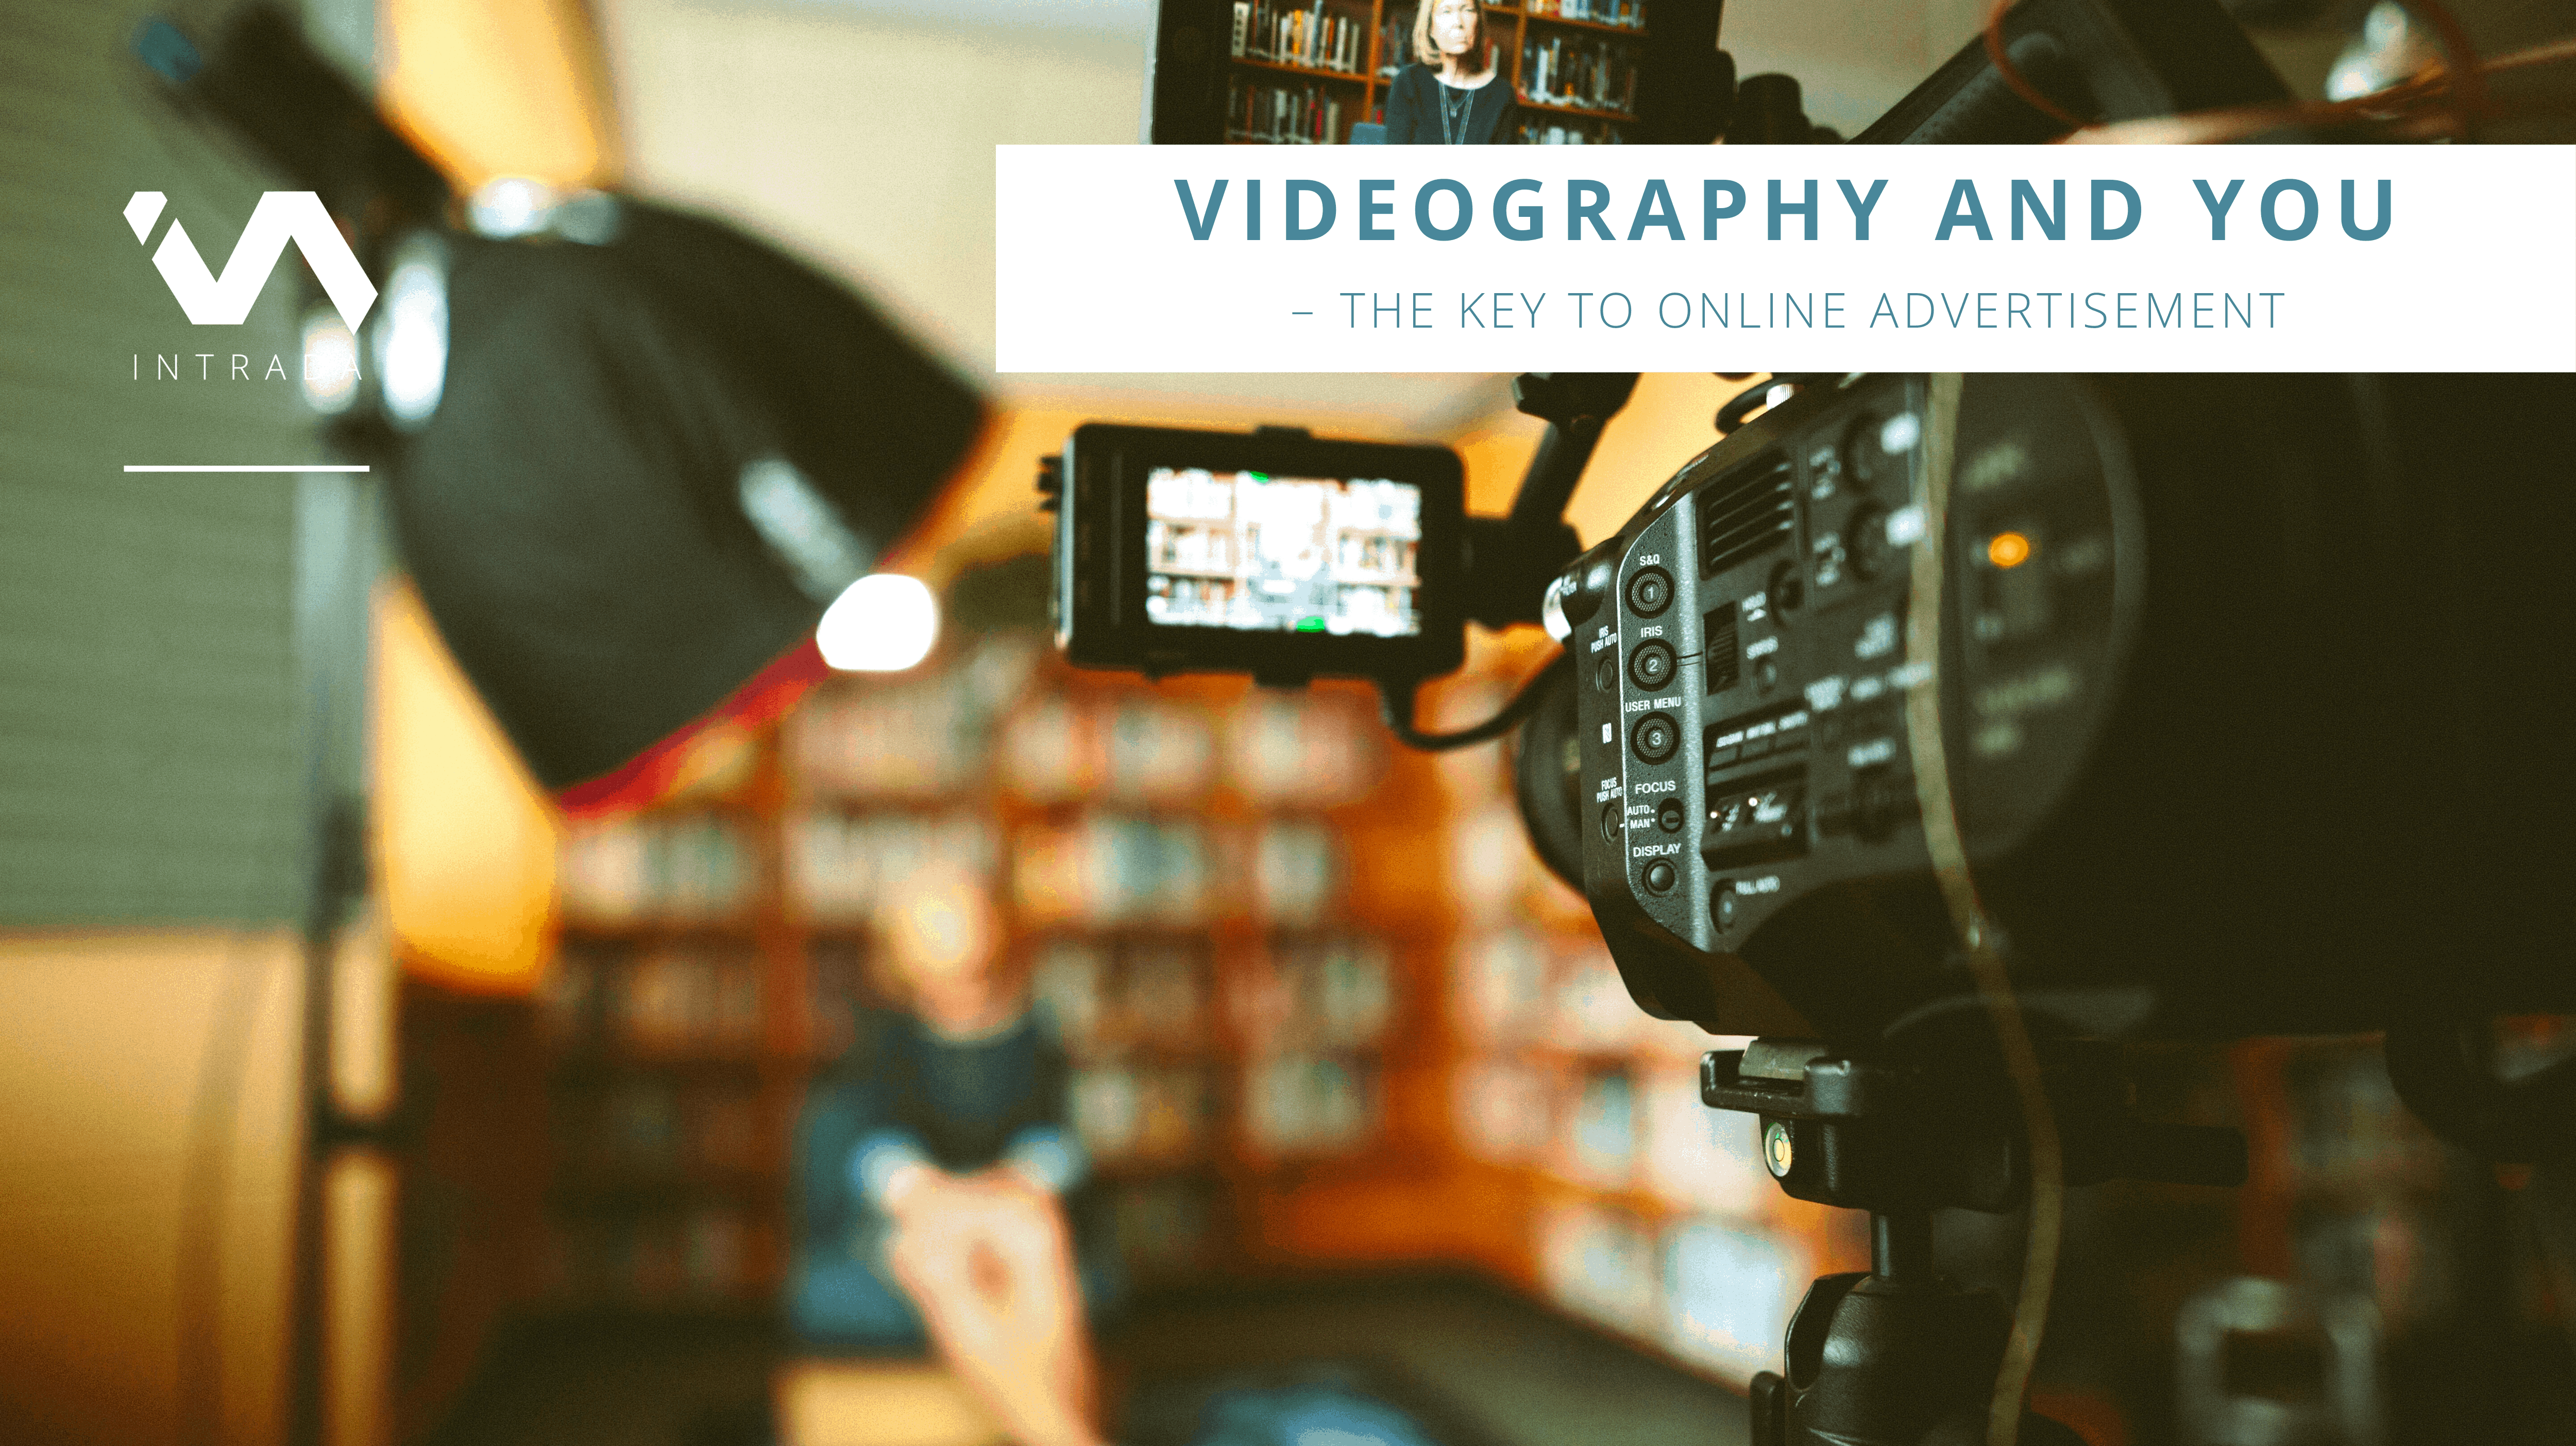 Videography and you – THE KEY TO ONLINE ADVERTISEMENT